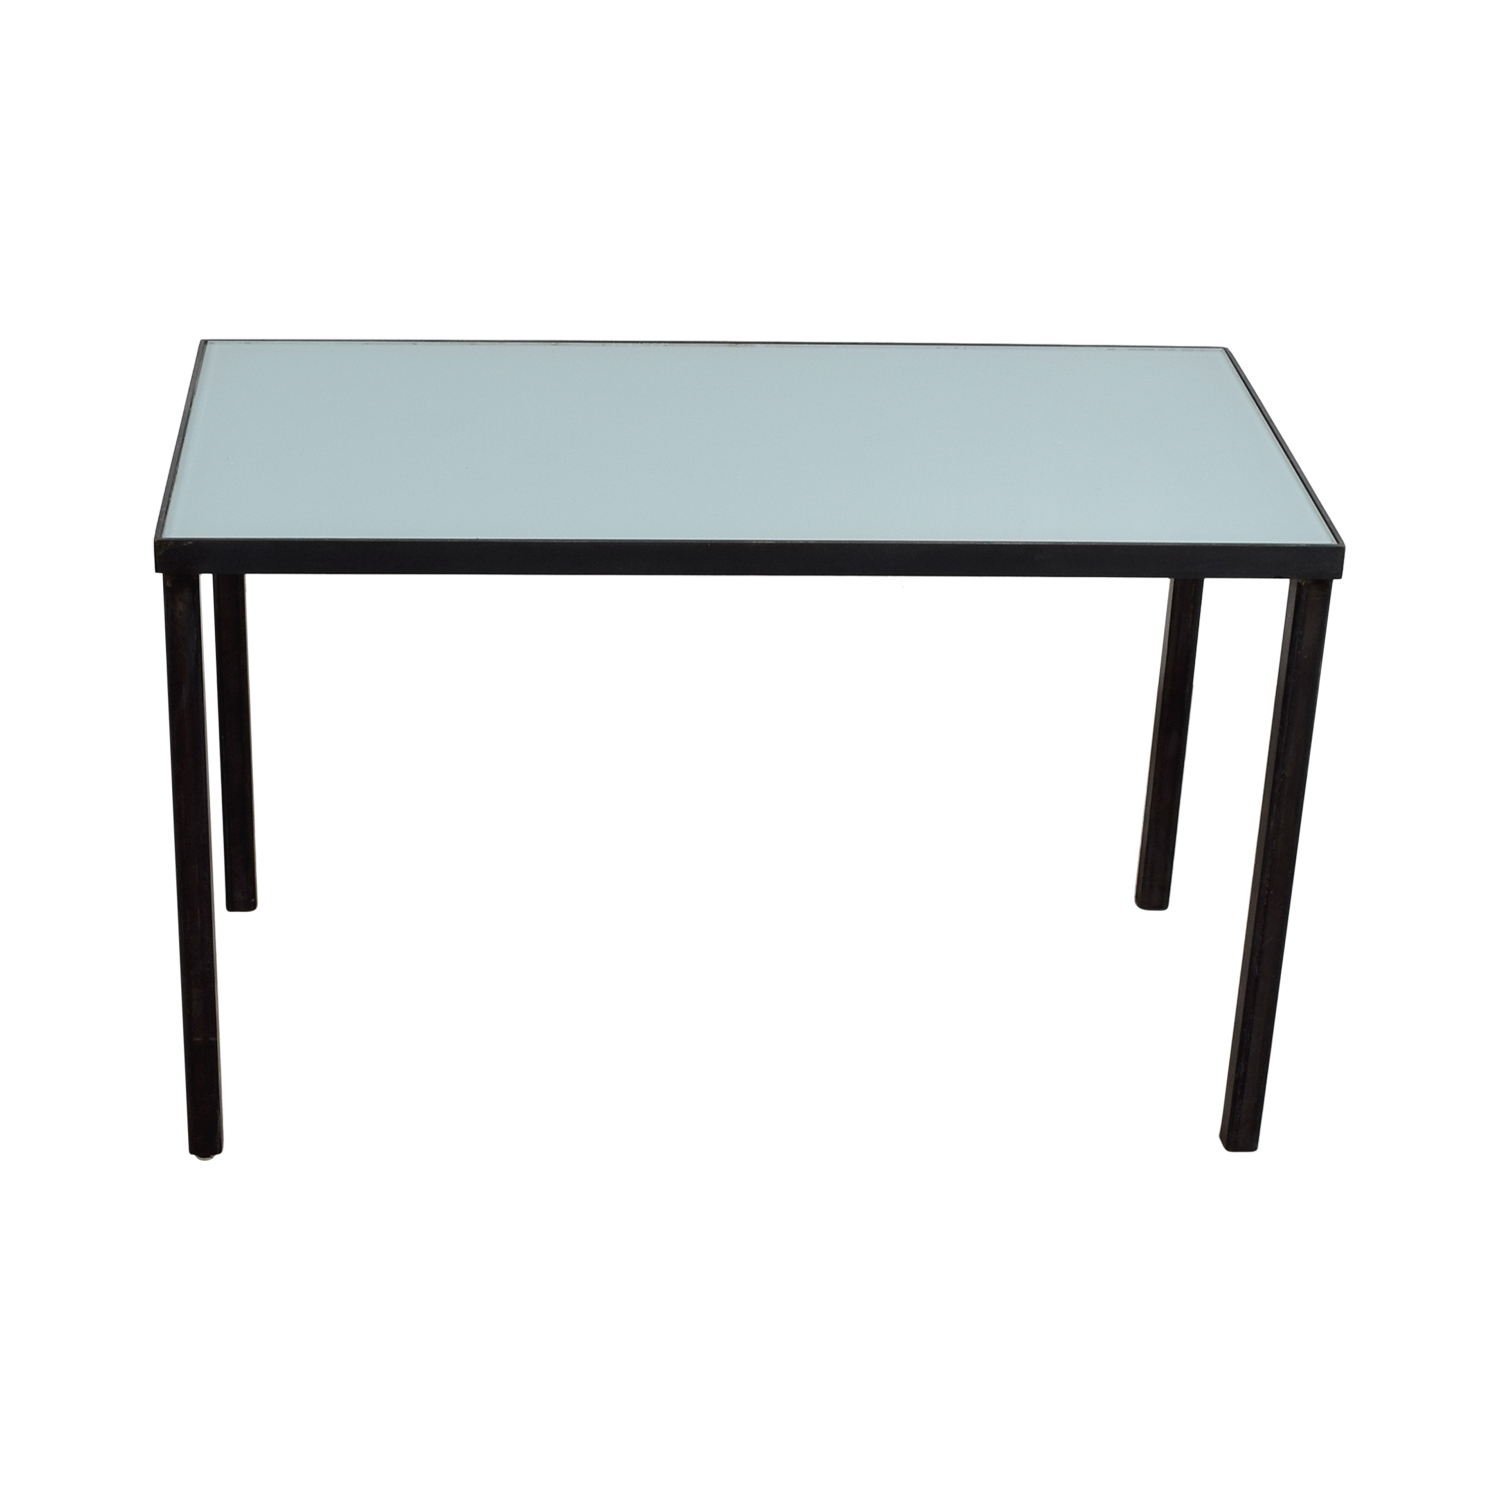 West Elm West Elm Glass and Metal Desk Table on sale